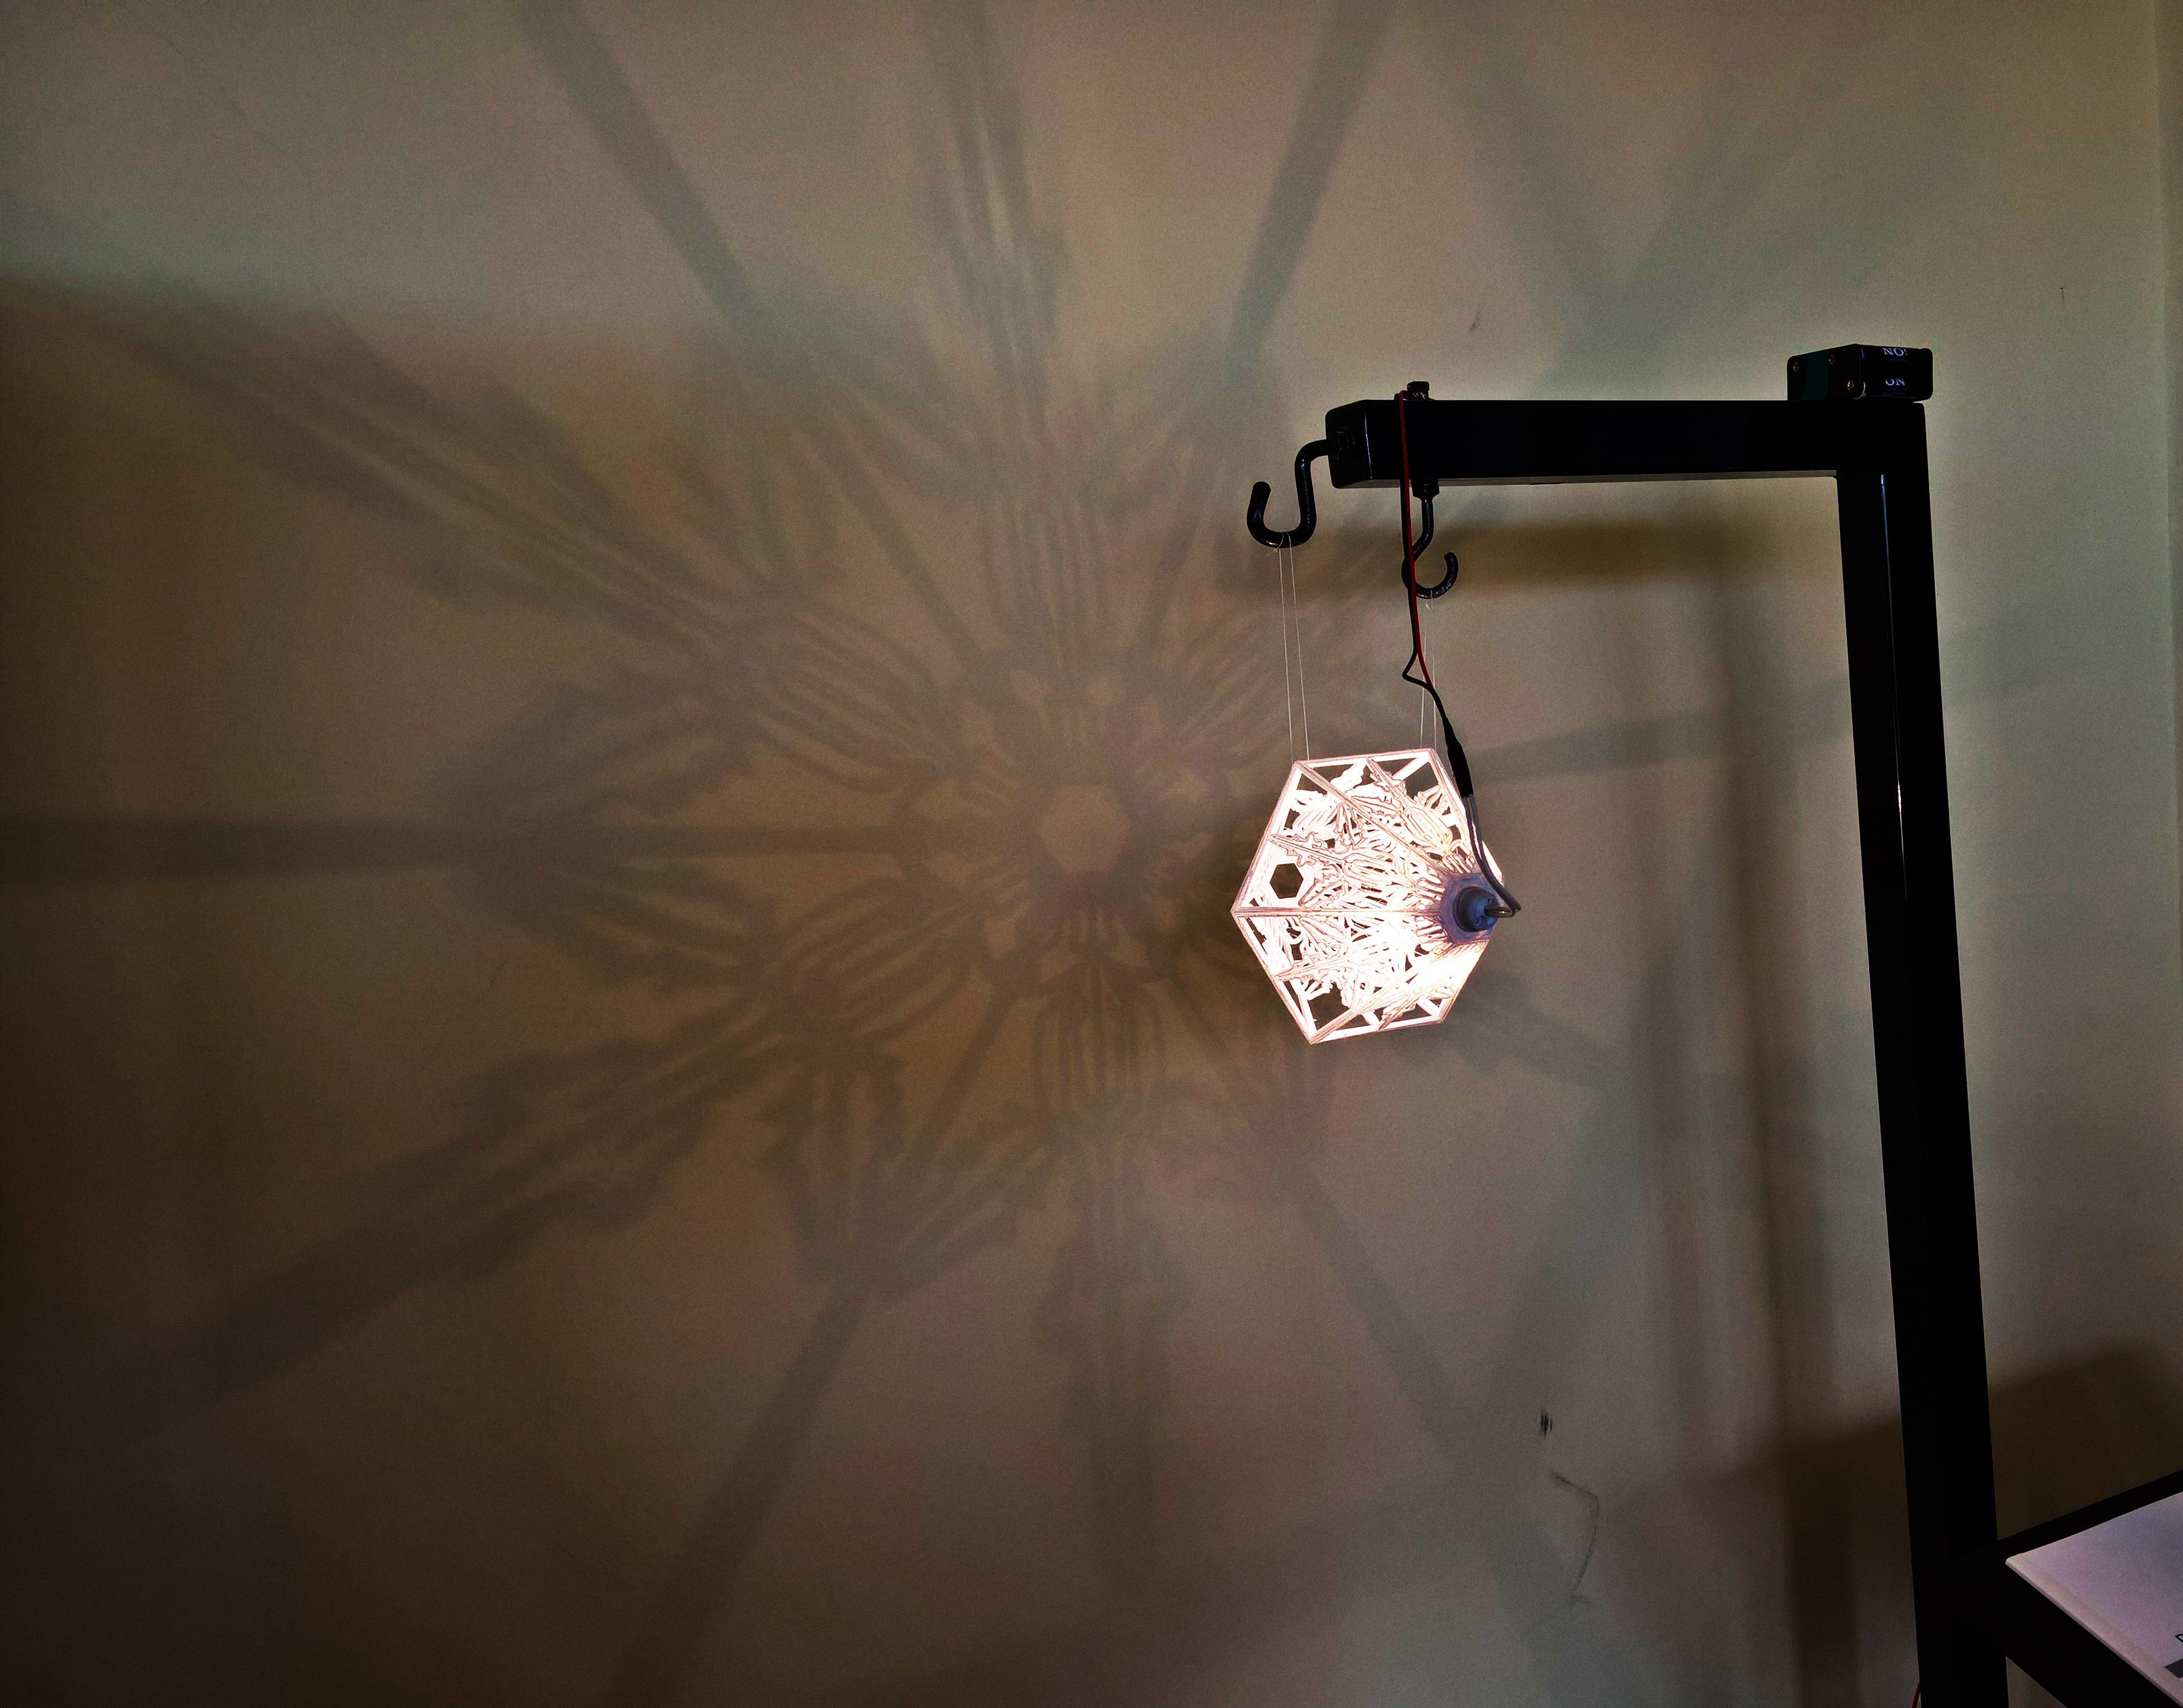 WP_20170626_11_47_03_Pro_02.jpg Download STL file 3D printed lamp pendant with unique light effects • Object to 3D print, BenJavor